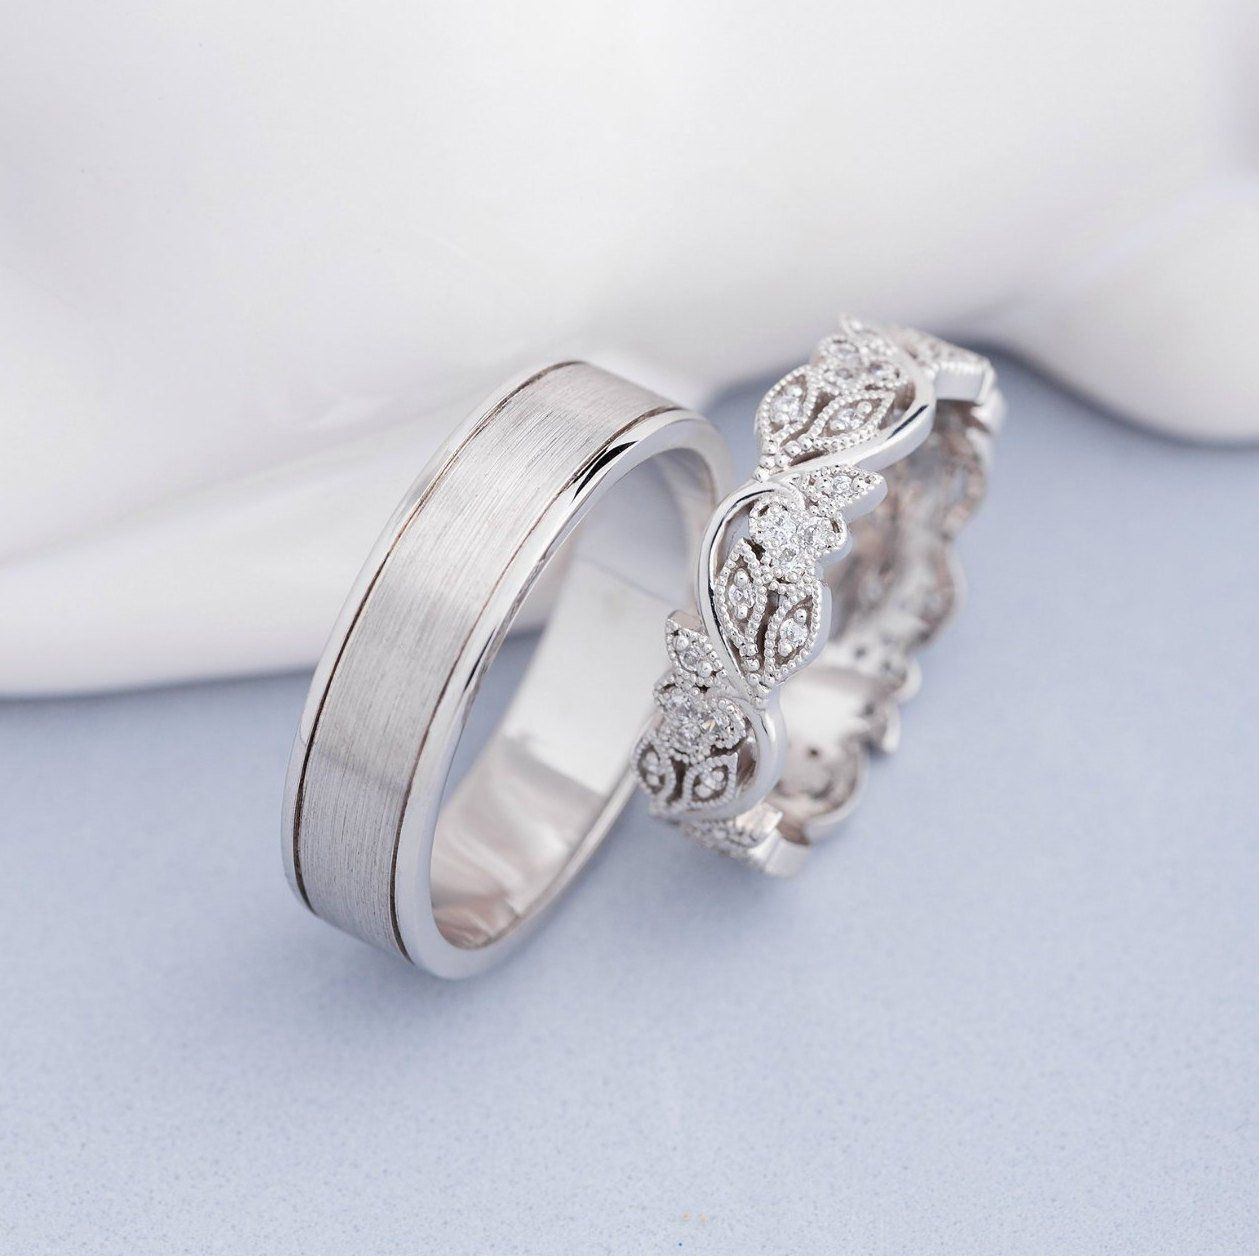 Unique matching wedding bands with diamonds. Couple